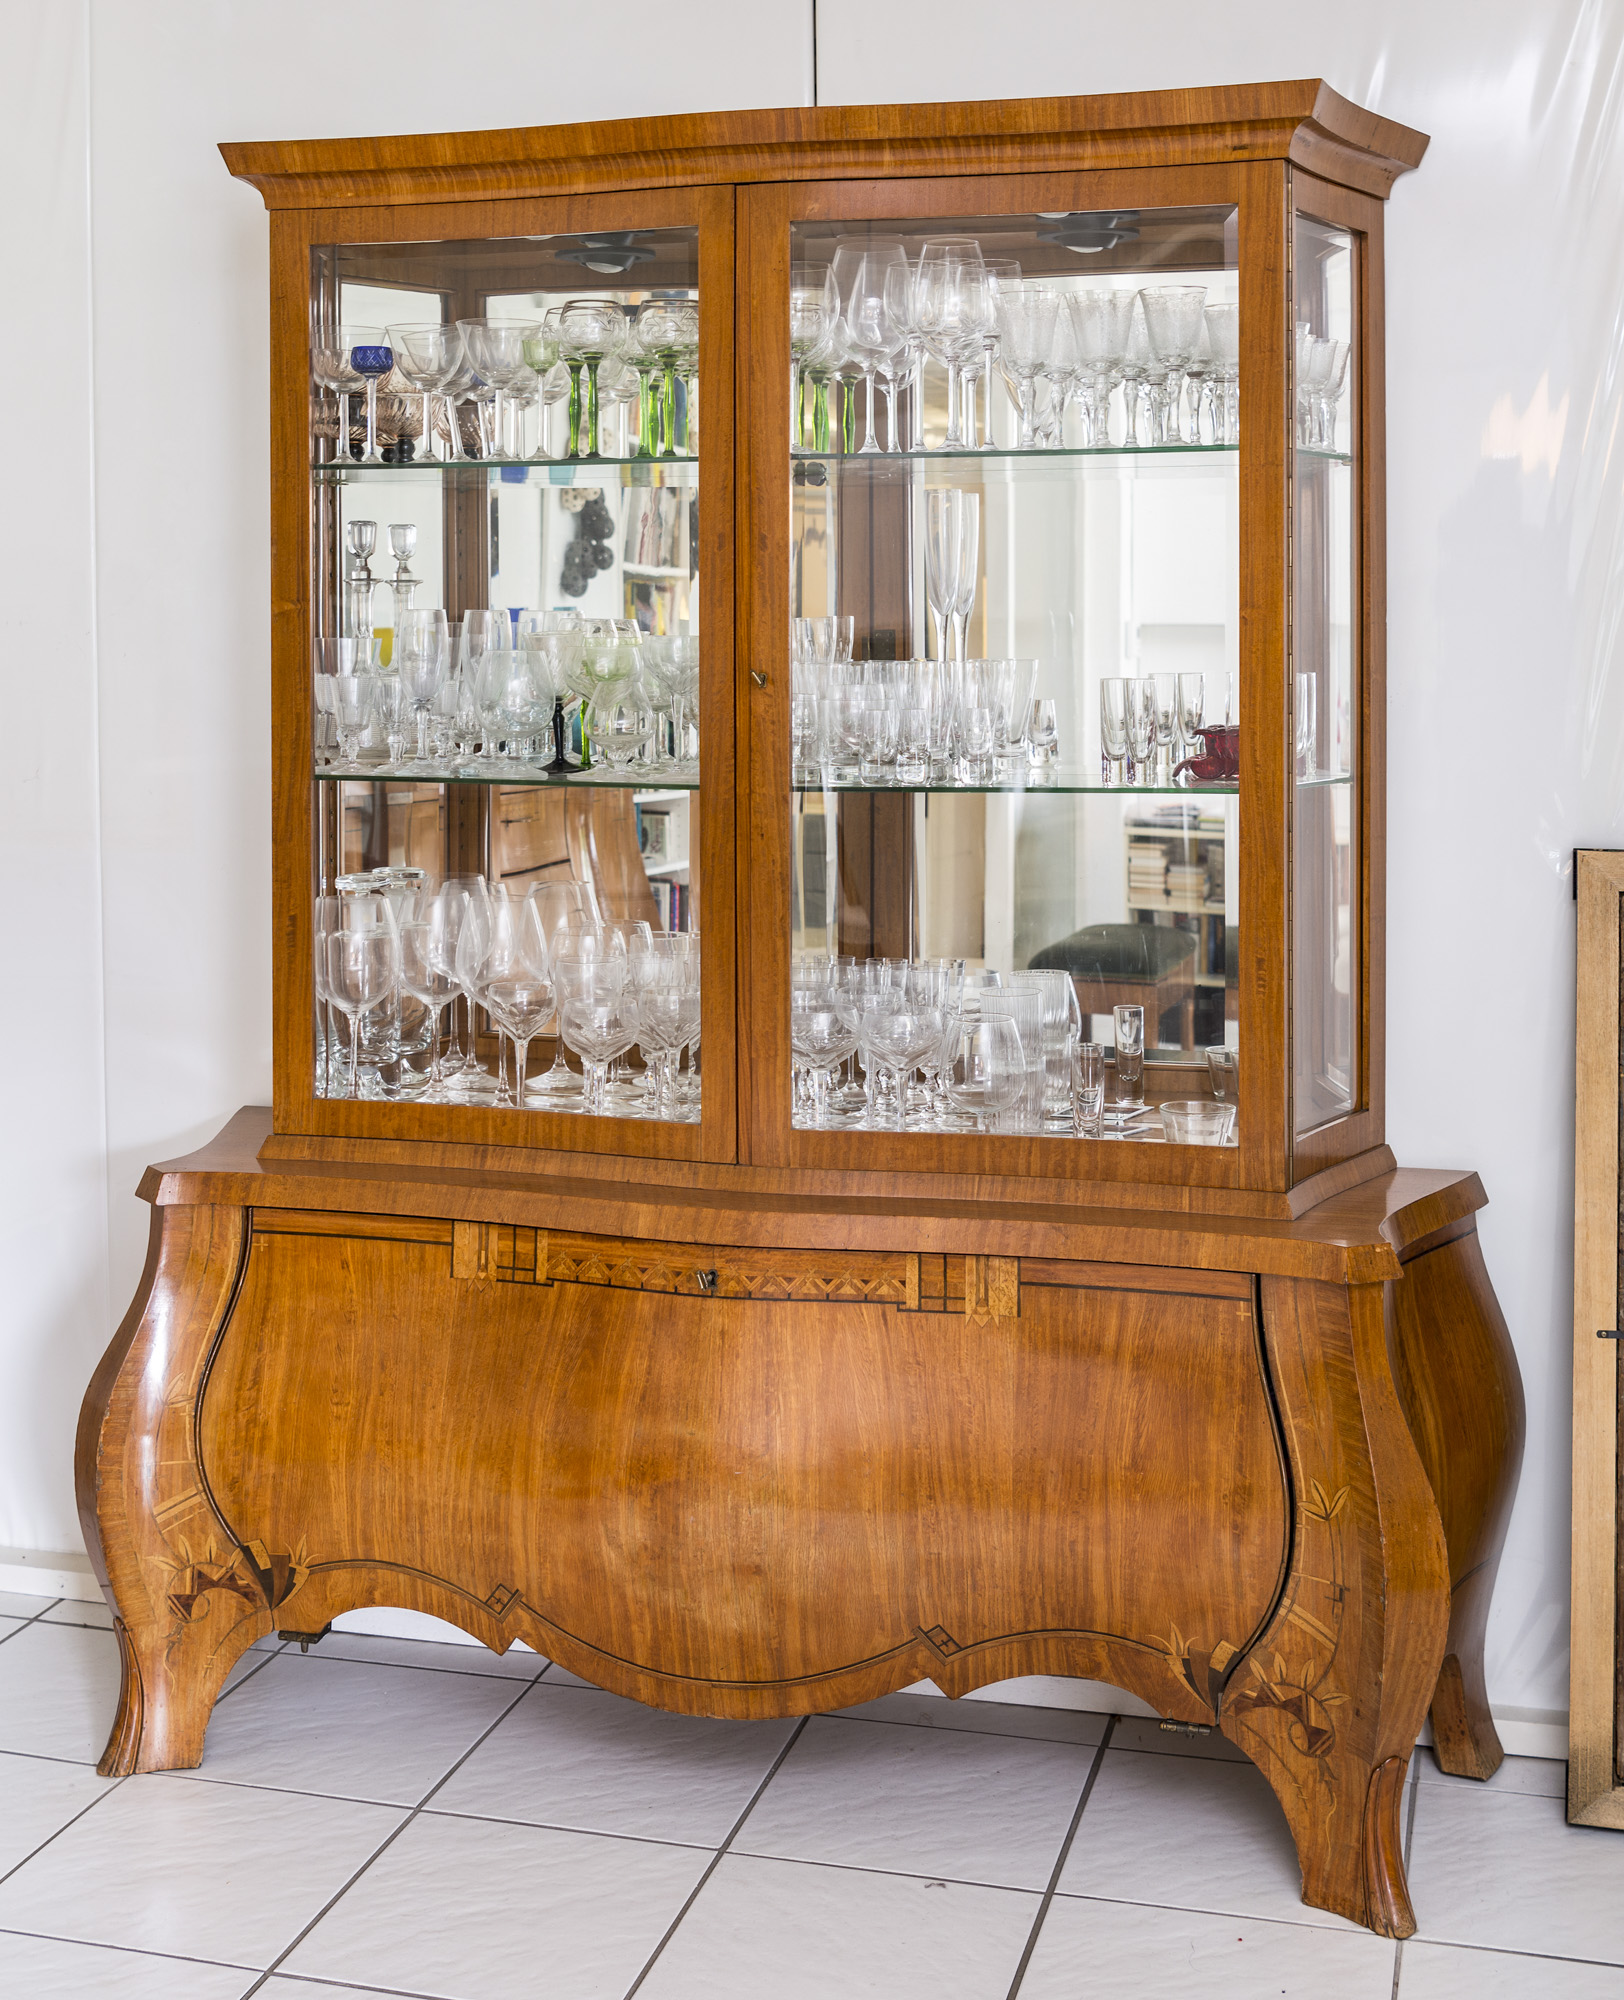 1920s Art Deco Vitrine Or Showcase Cabinet From France